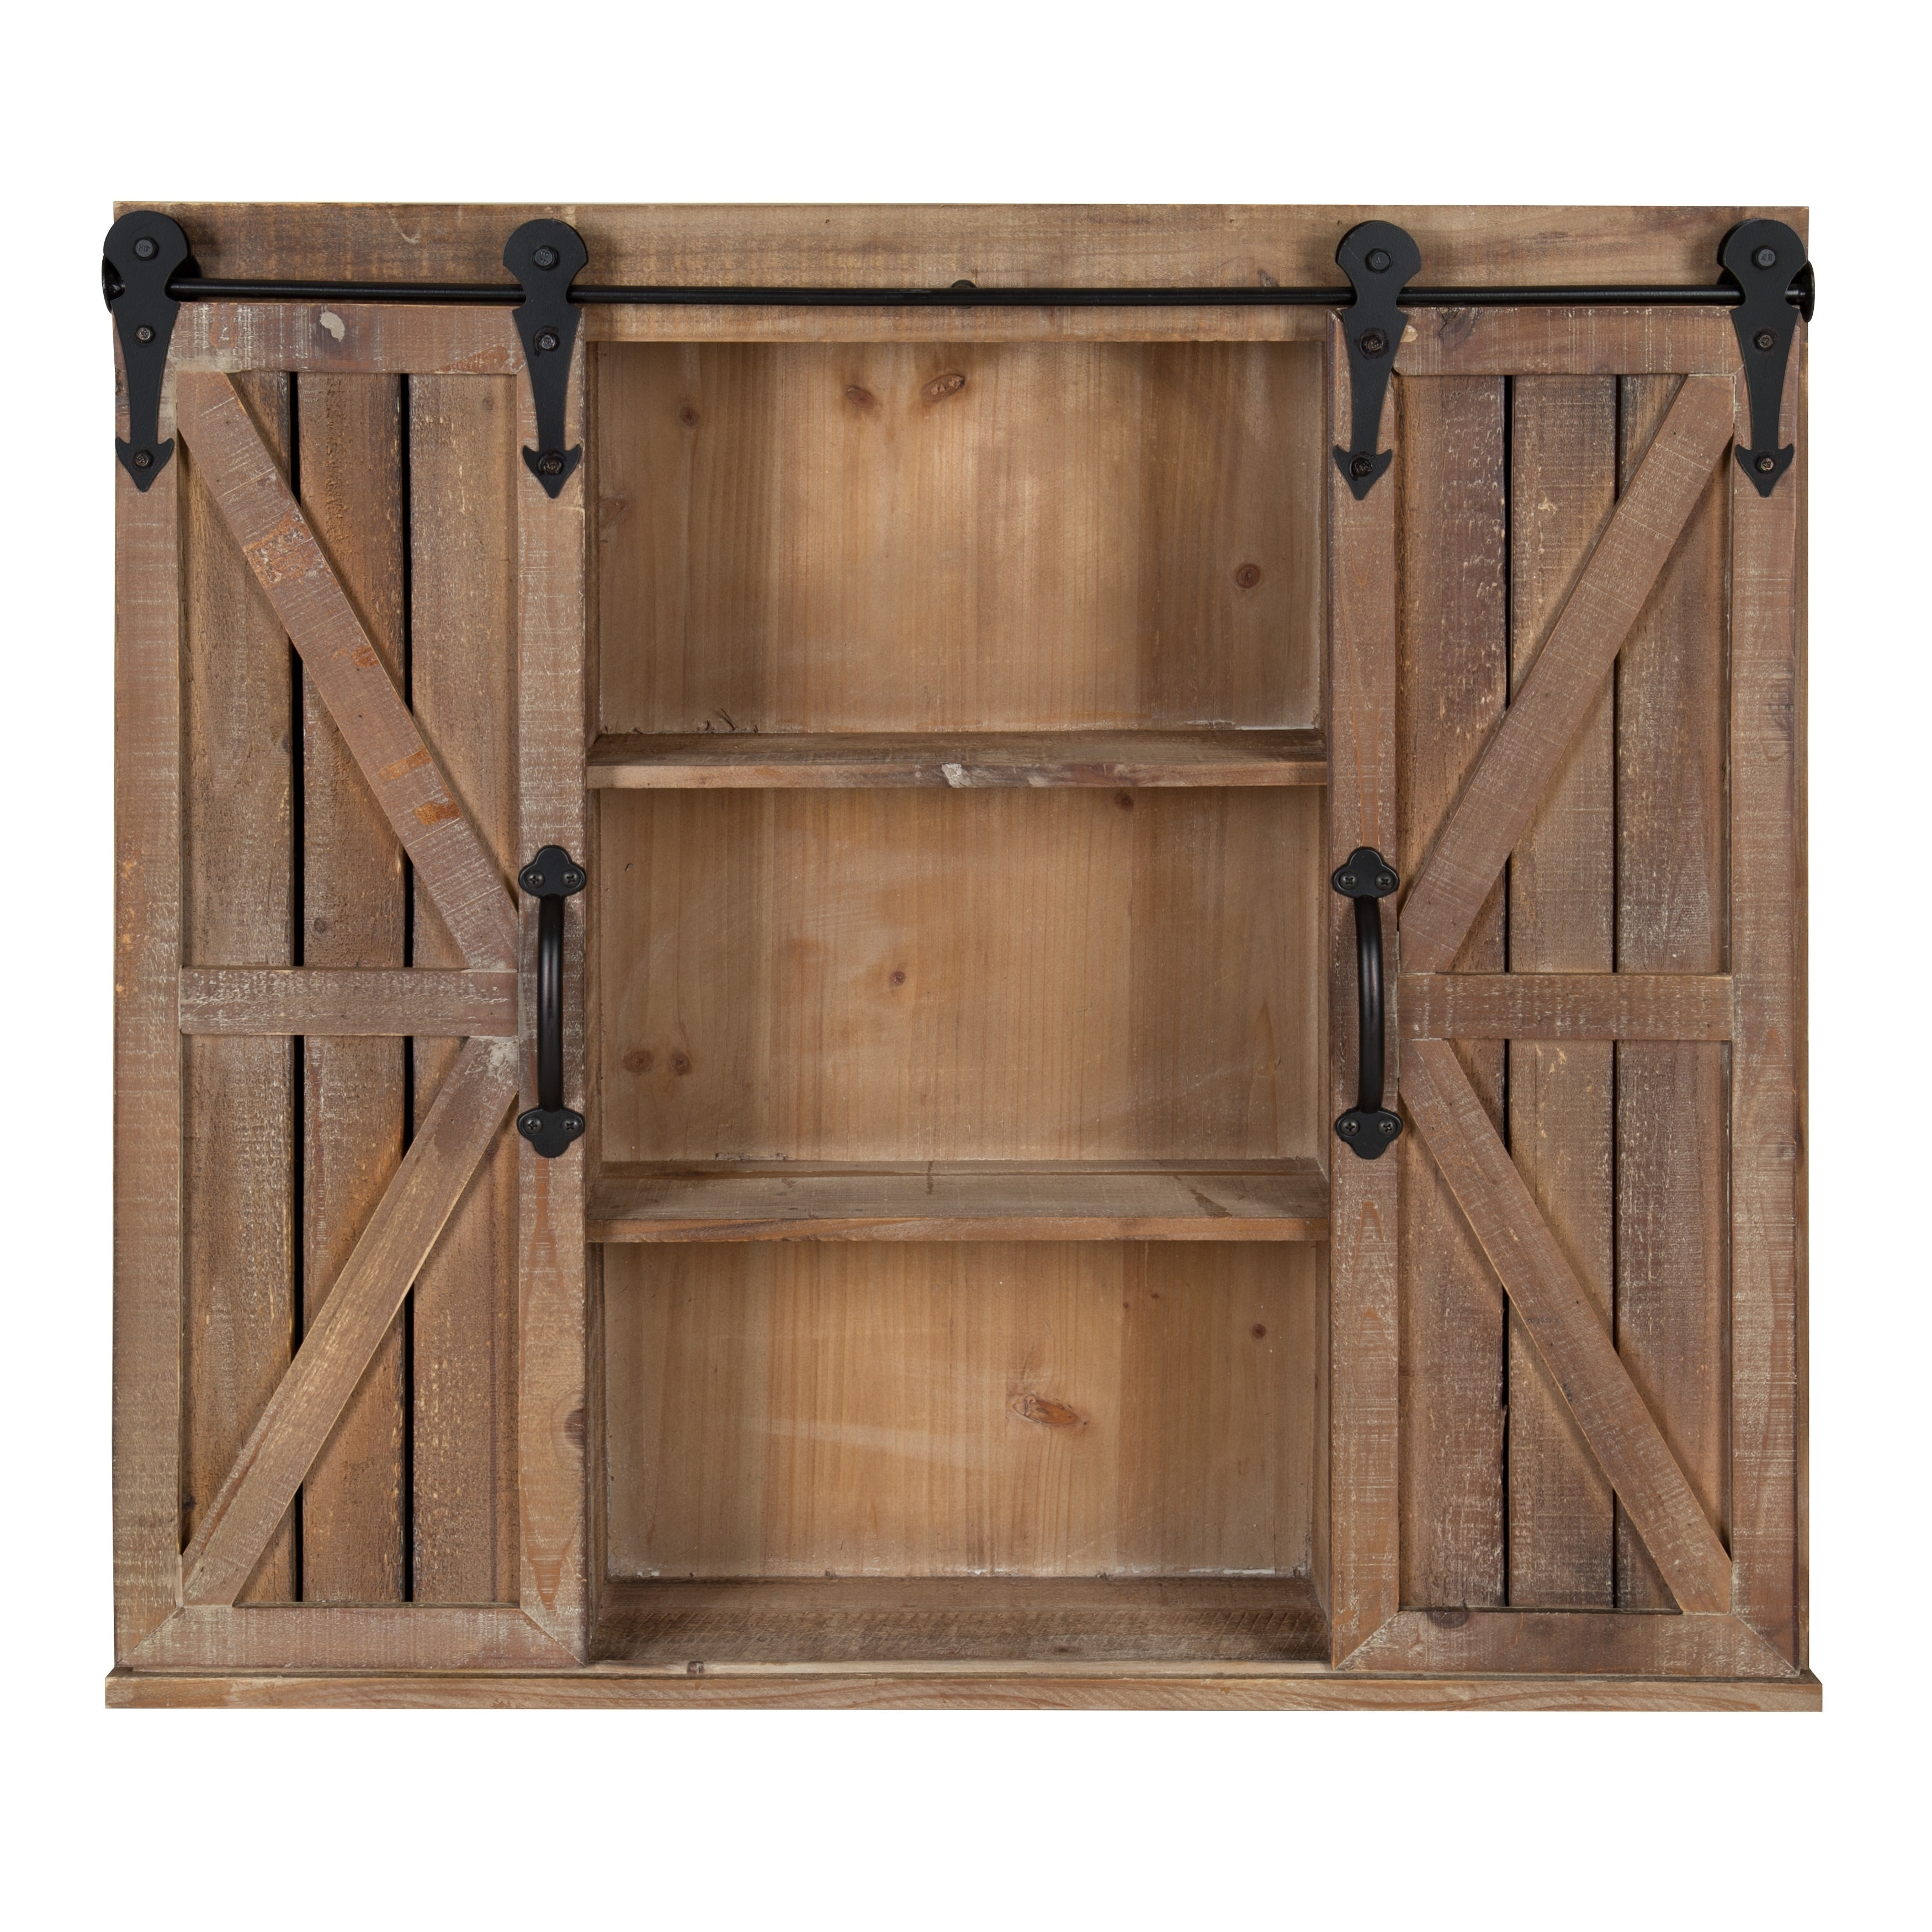 Exceptionnel Shop Kate And Laurel Cates Rustic Wood Wall Storage Cabinet With Barn Doors    On Sale   Free Shipping Today   Overstock.com   16838745